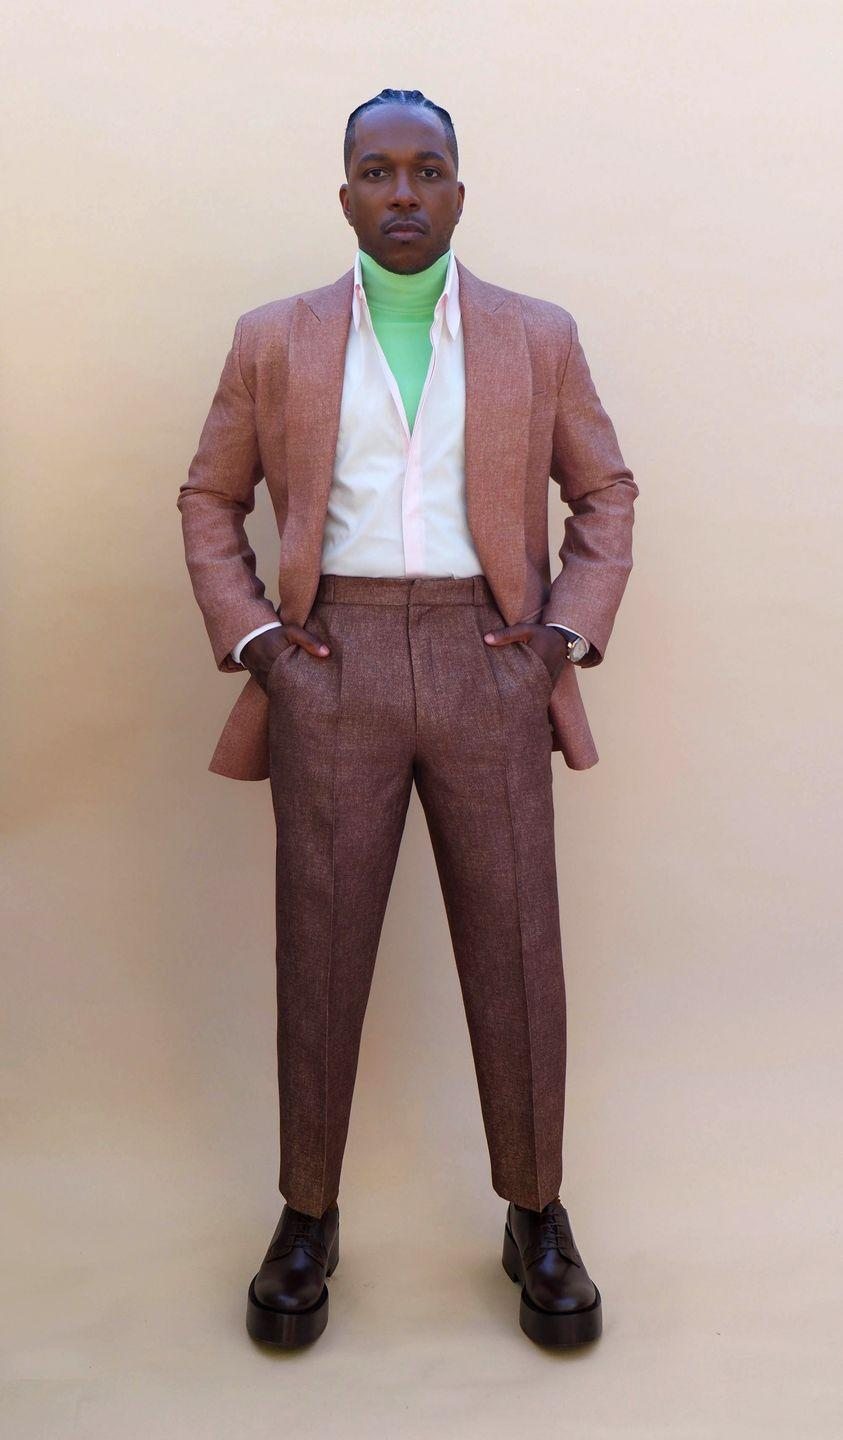 <p>The <em>Hamilton</em> and <em>One Night in Miami</em> star earned our never-ending respect for going way off the beaten path with this pink-hued suit and brilliant green turtleneck. Unexpected, unforgettable, and up-to-the-second modern.</p>